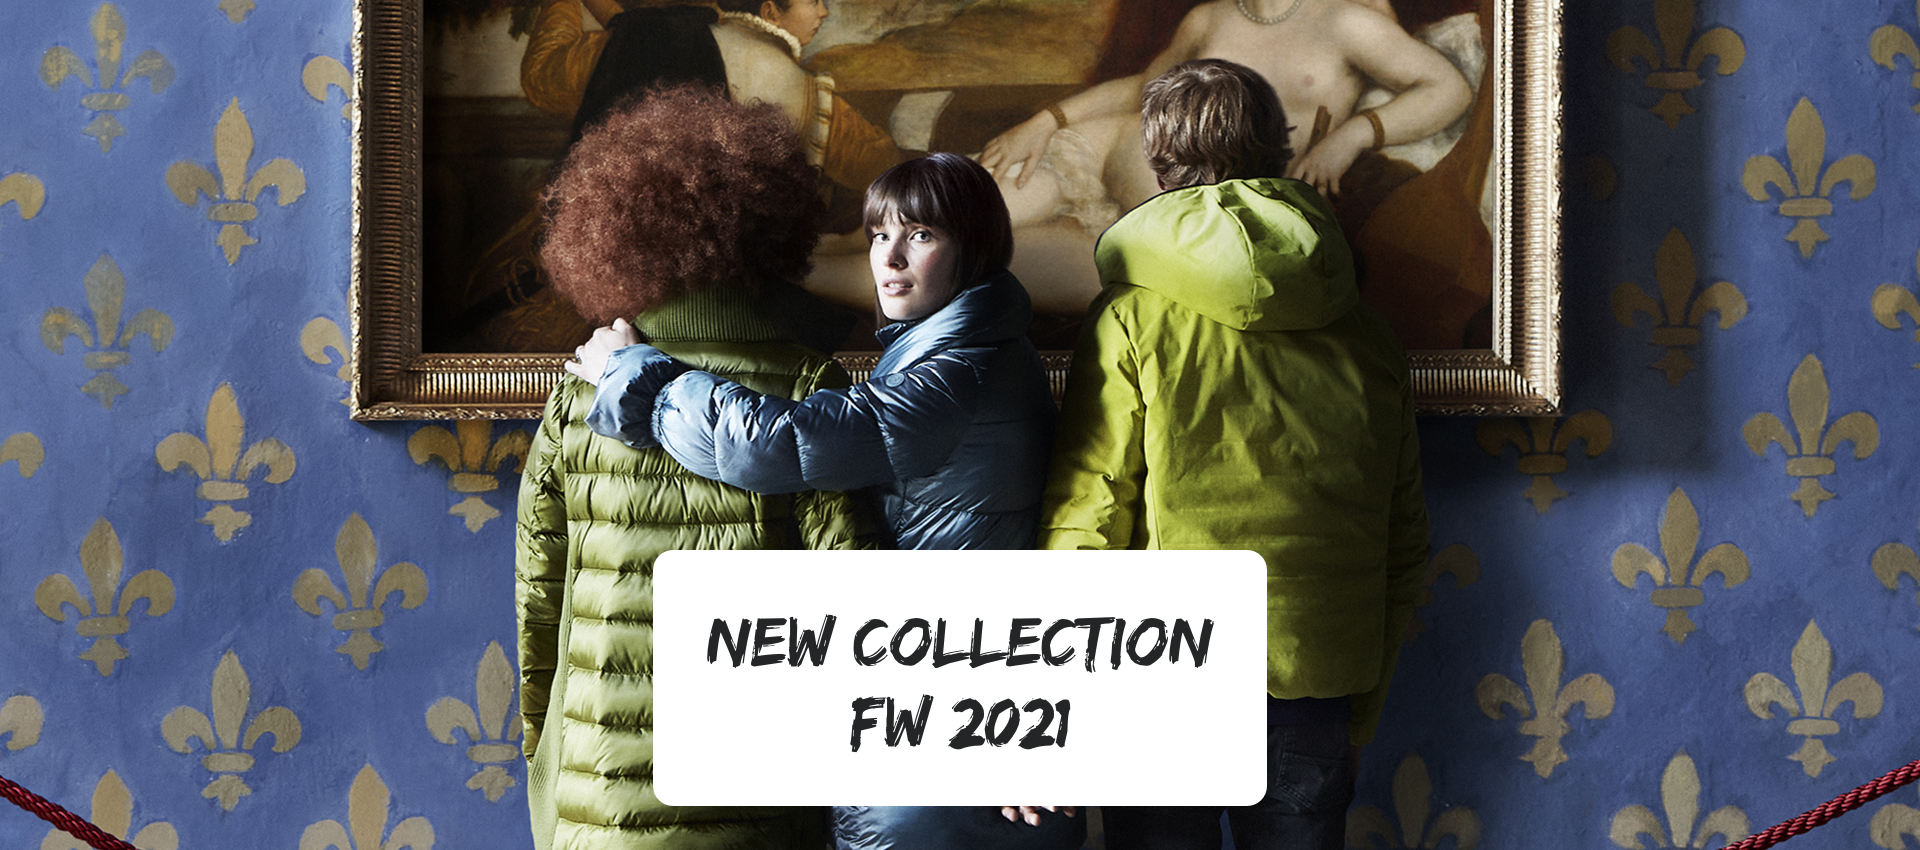 Fall winter collection 2021